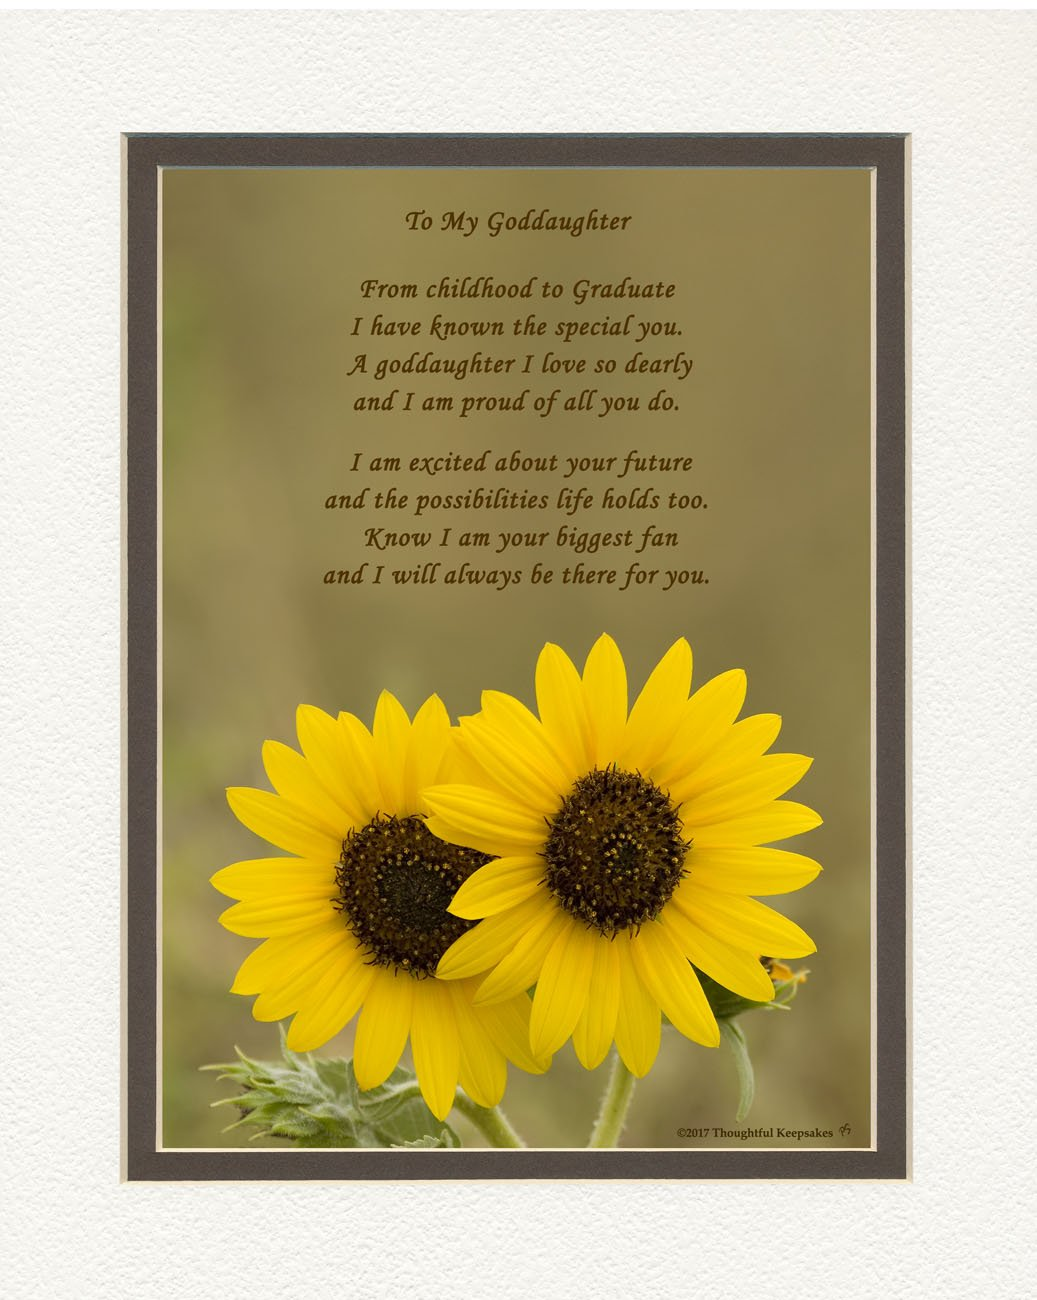 Graduation Gifts Goddaughter, Sunflowers Photo with From Childhood to Graduate Poem, 8x10 Double Matted. Special Keepsake for Goddaughter, Unique College - High School Grad Gifts